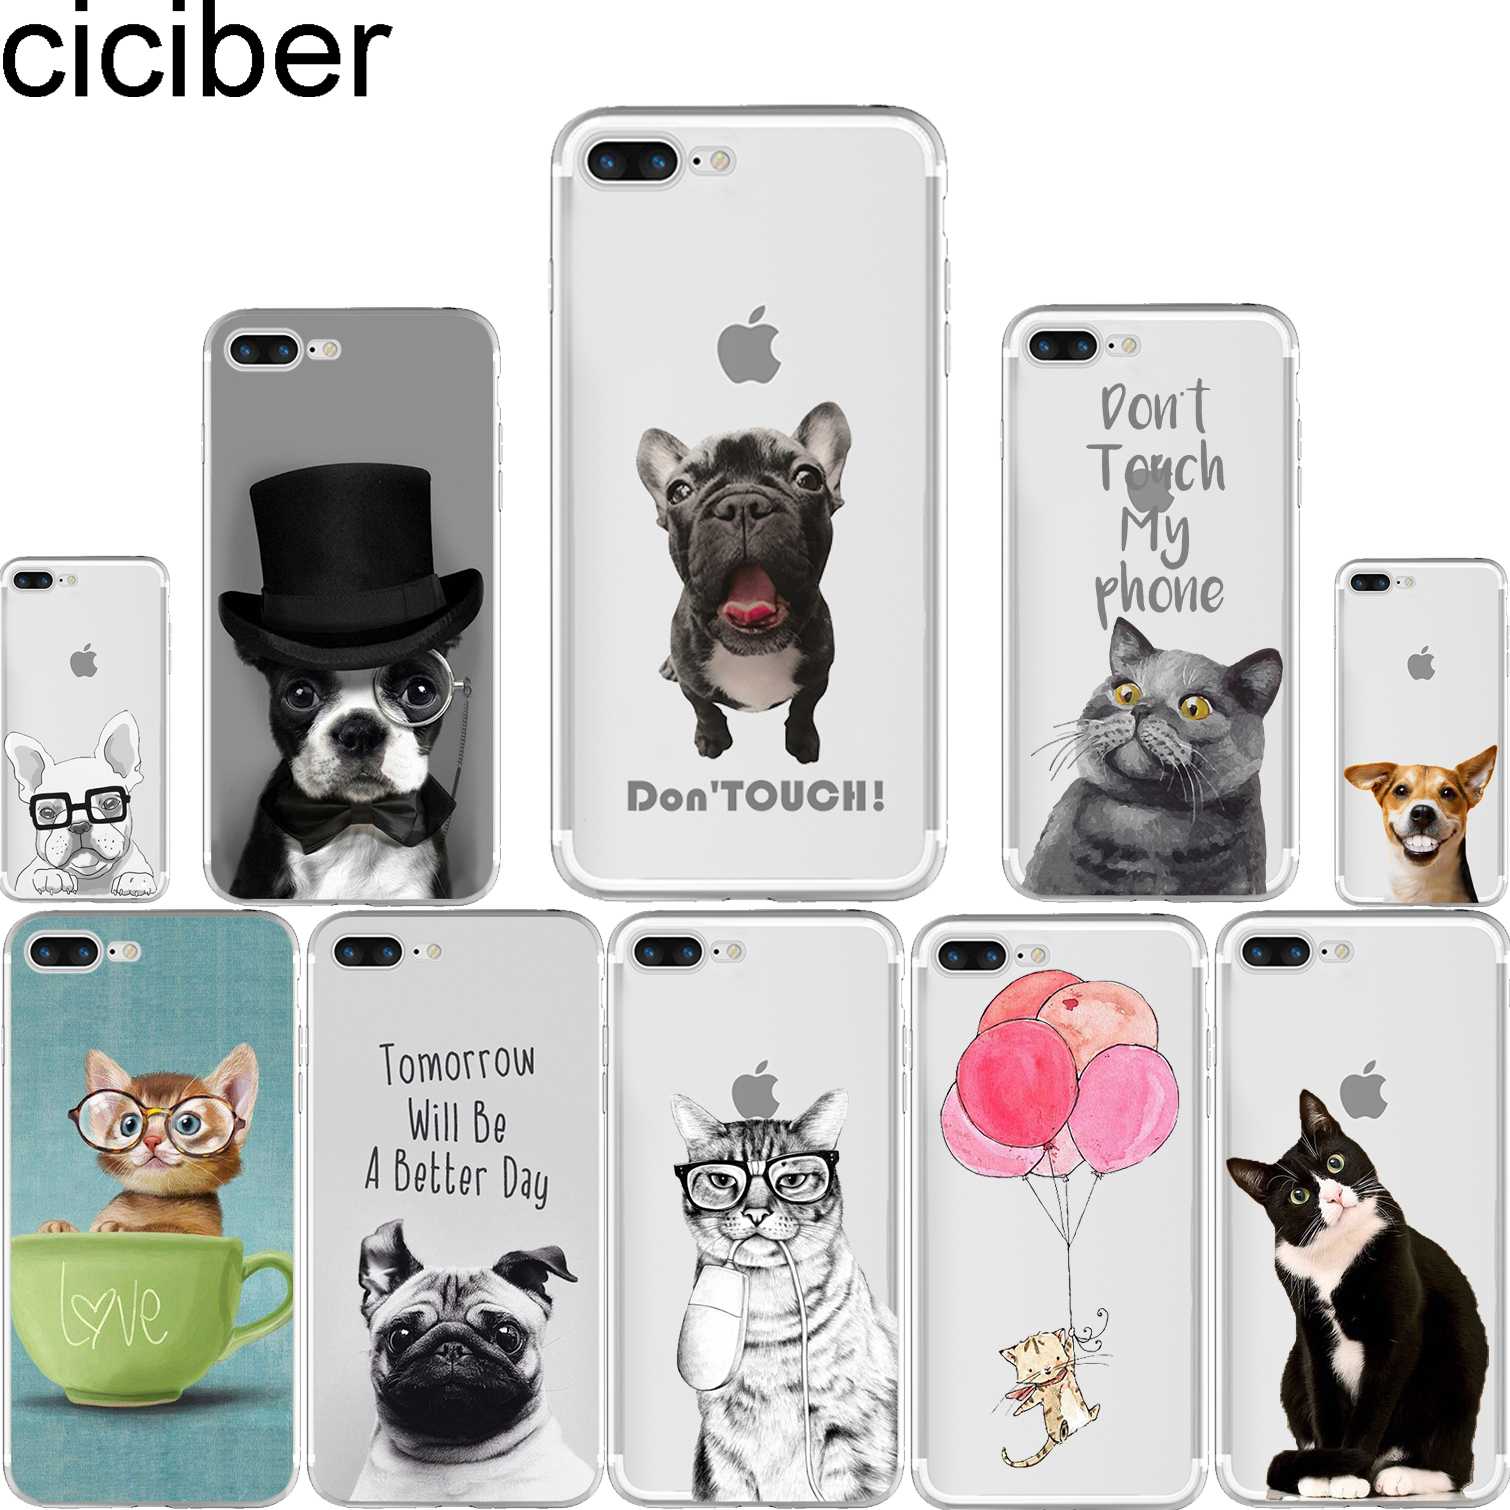 ciciber Cute Animal Dog Cat Shorthair Bulldog Pattern Design Soft Silicone Phone Cases Cover for Iphone 7 6 6S 8 Plus 5S SE X